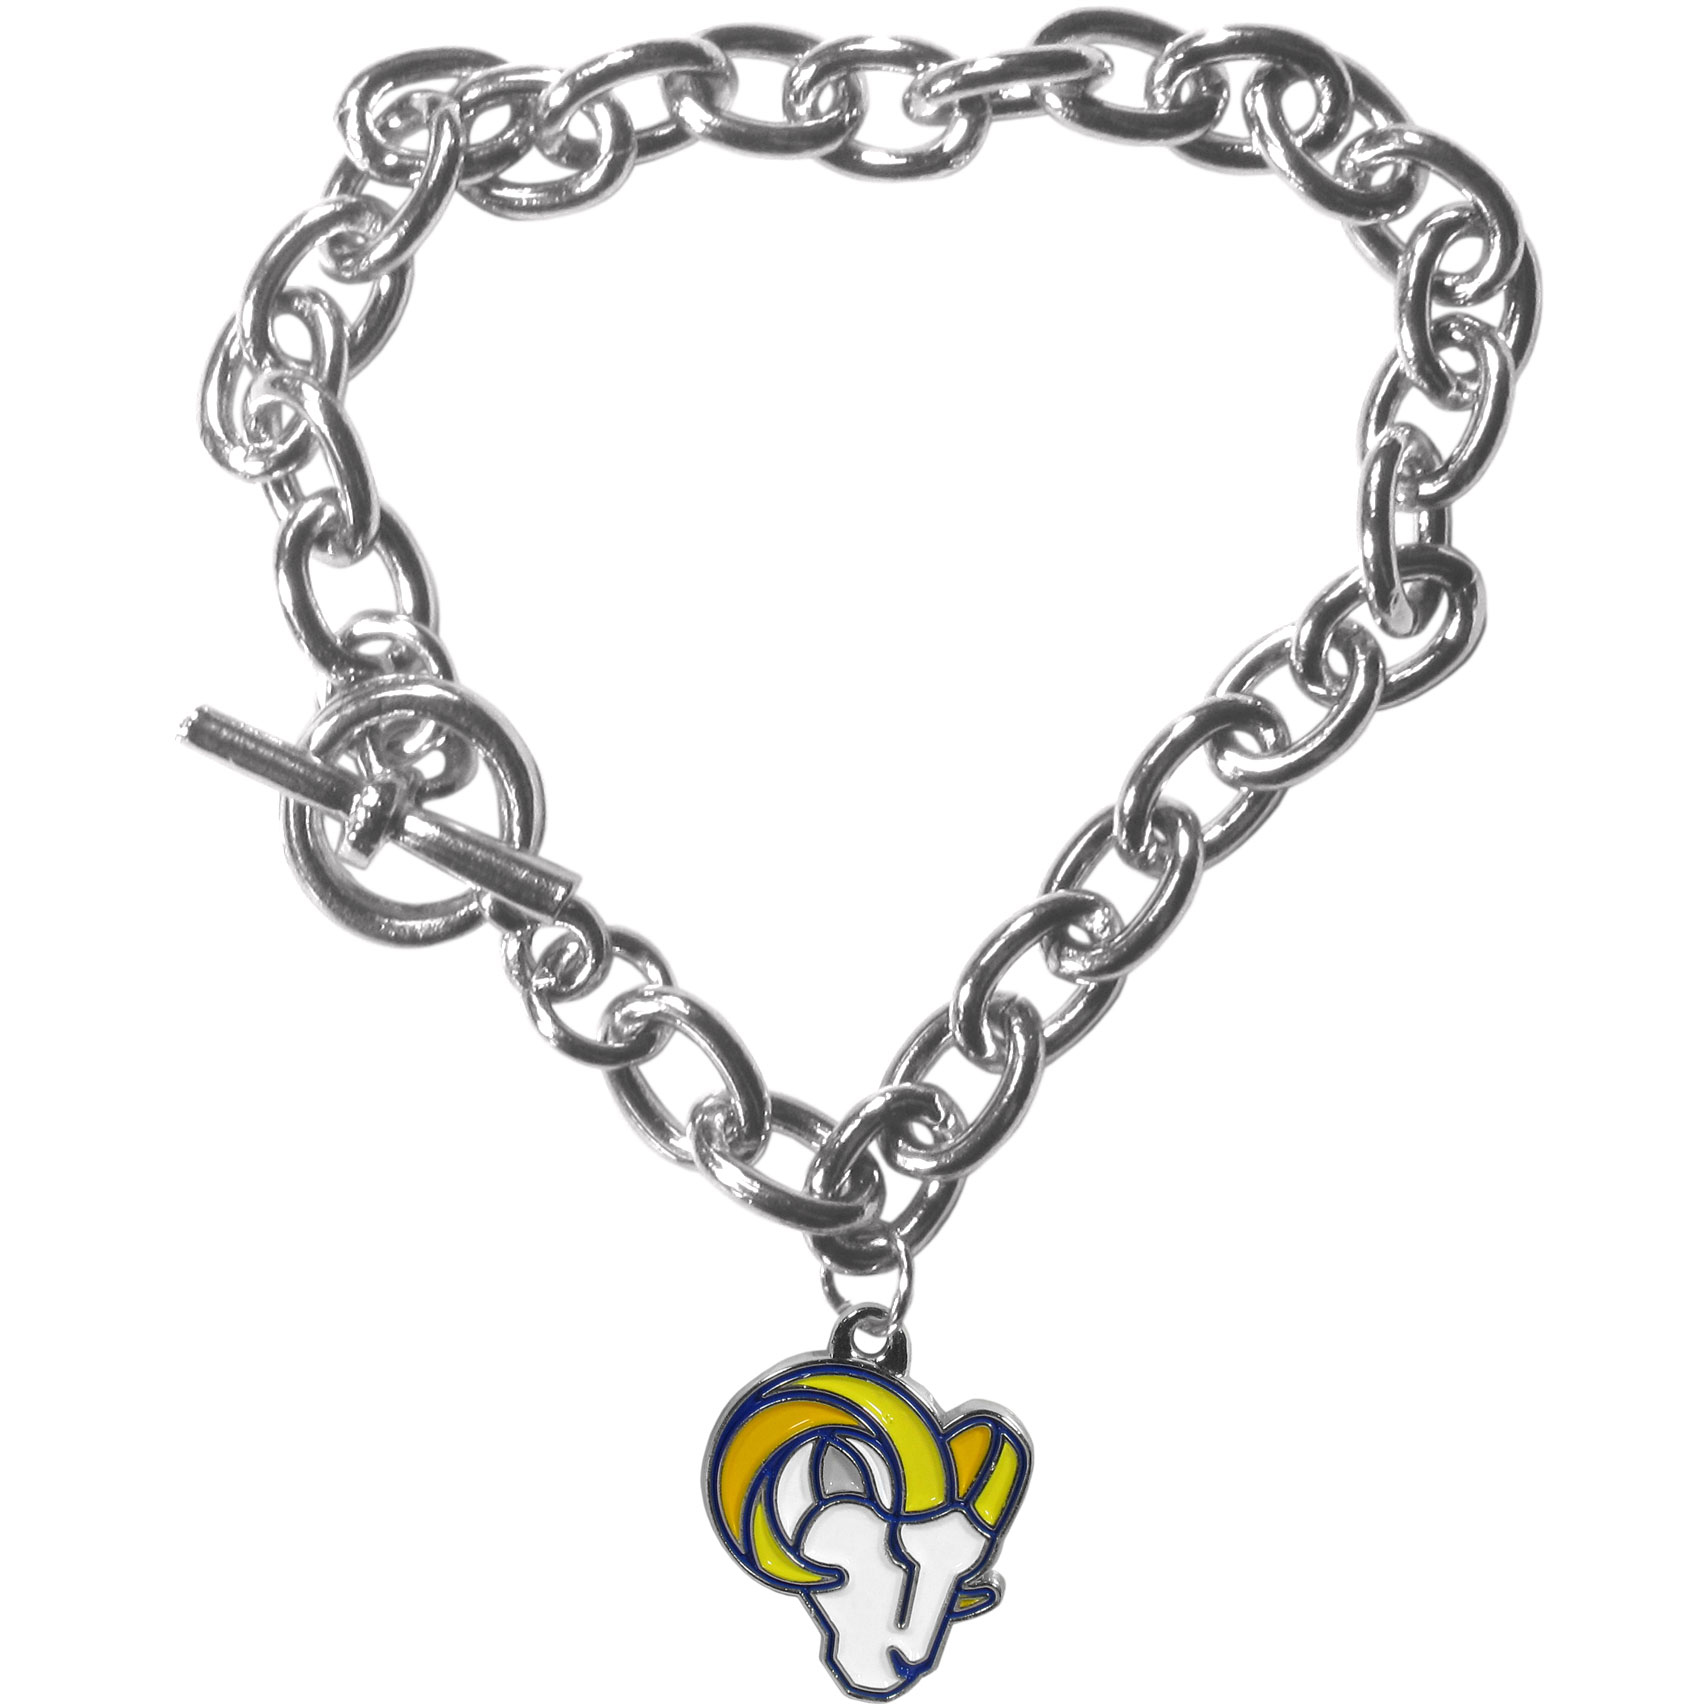 St. Louis Rams Charm Chain Bracelet - Our classic single charm bracelet is a great way to show off your team pride! The 7.5 inch large link chain features a high polish St. Louis Rams charm and features a toggle clasp which makes it super easy to take on and off.